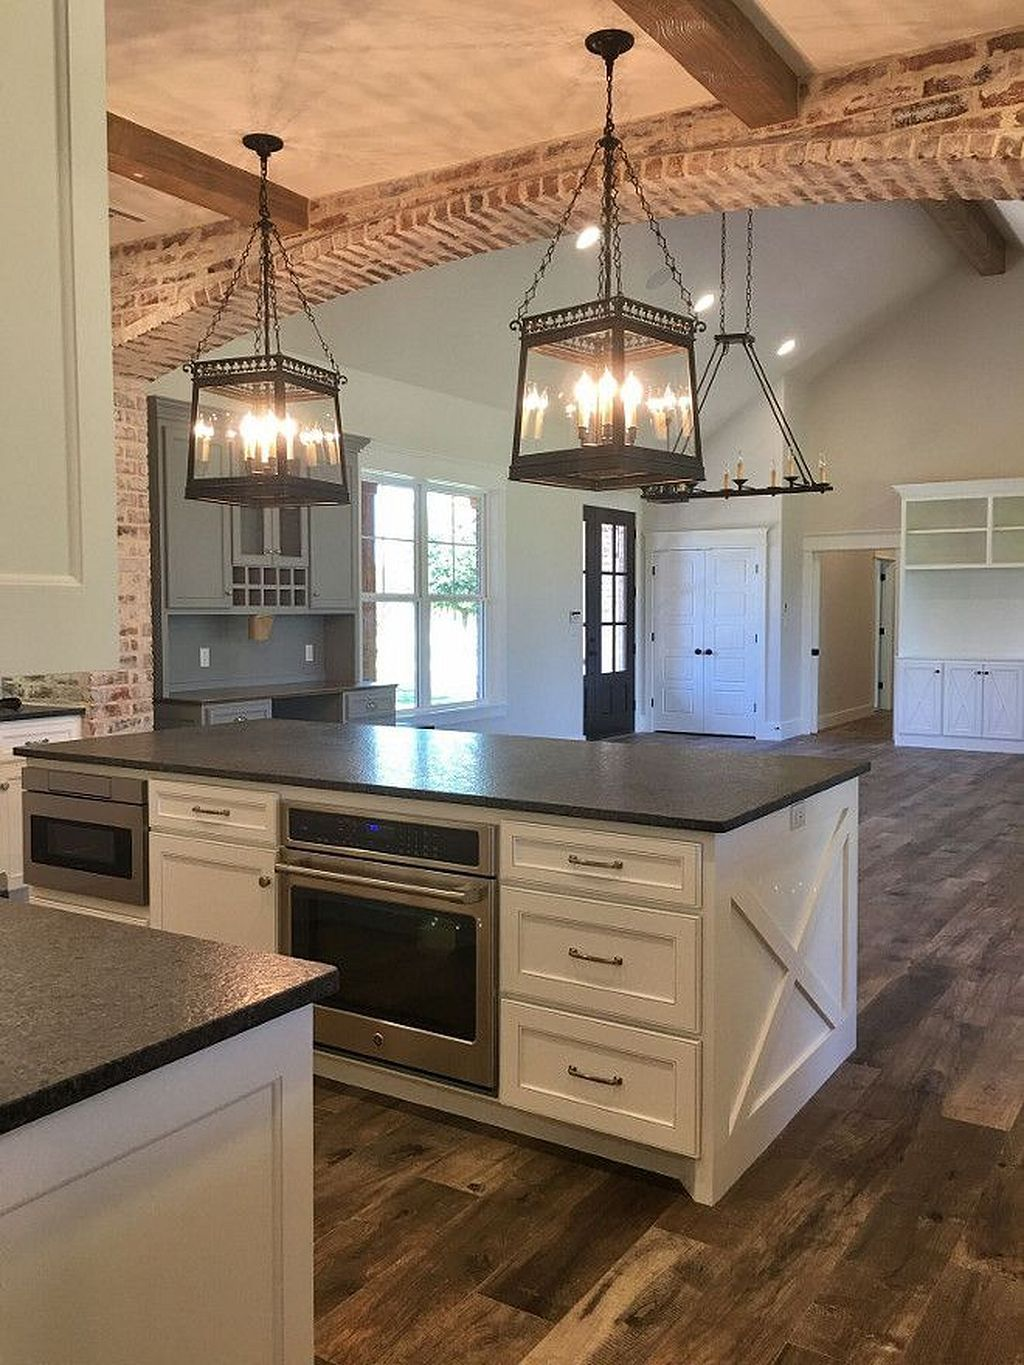 Great 30 Farmhouse Kitchen Ideas On A Budget 2018 Https Kidmagz Com 30 Farmhouse Farmhouse Kitchen Remodel Rustic Farmhouse Kitchen Farmhouse Style Kitchen